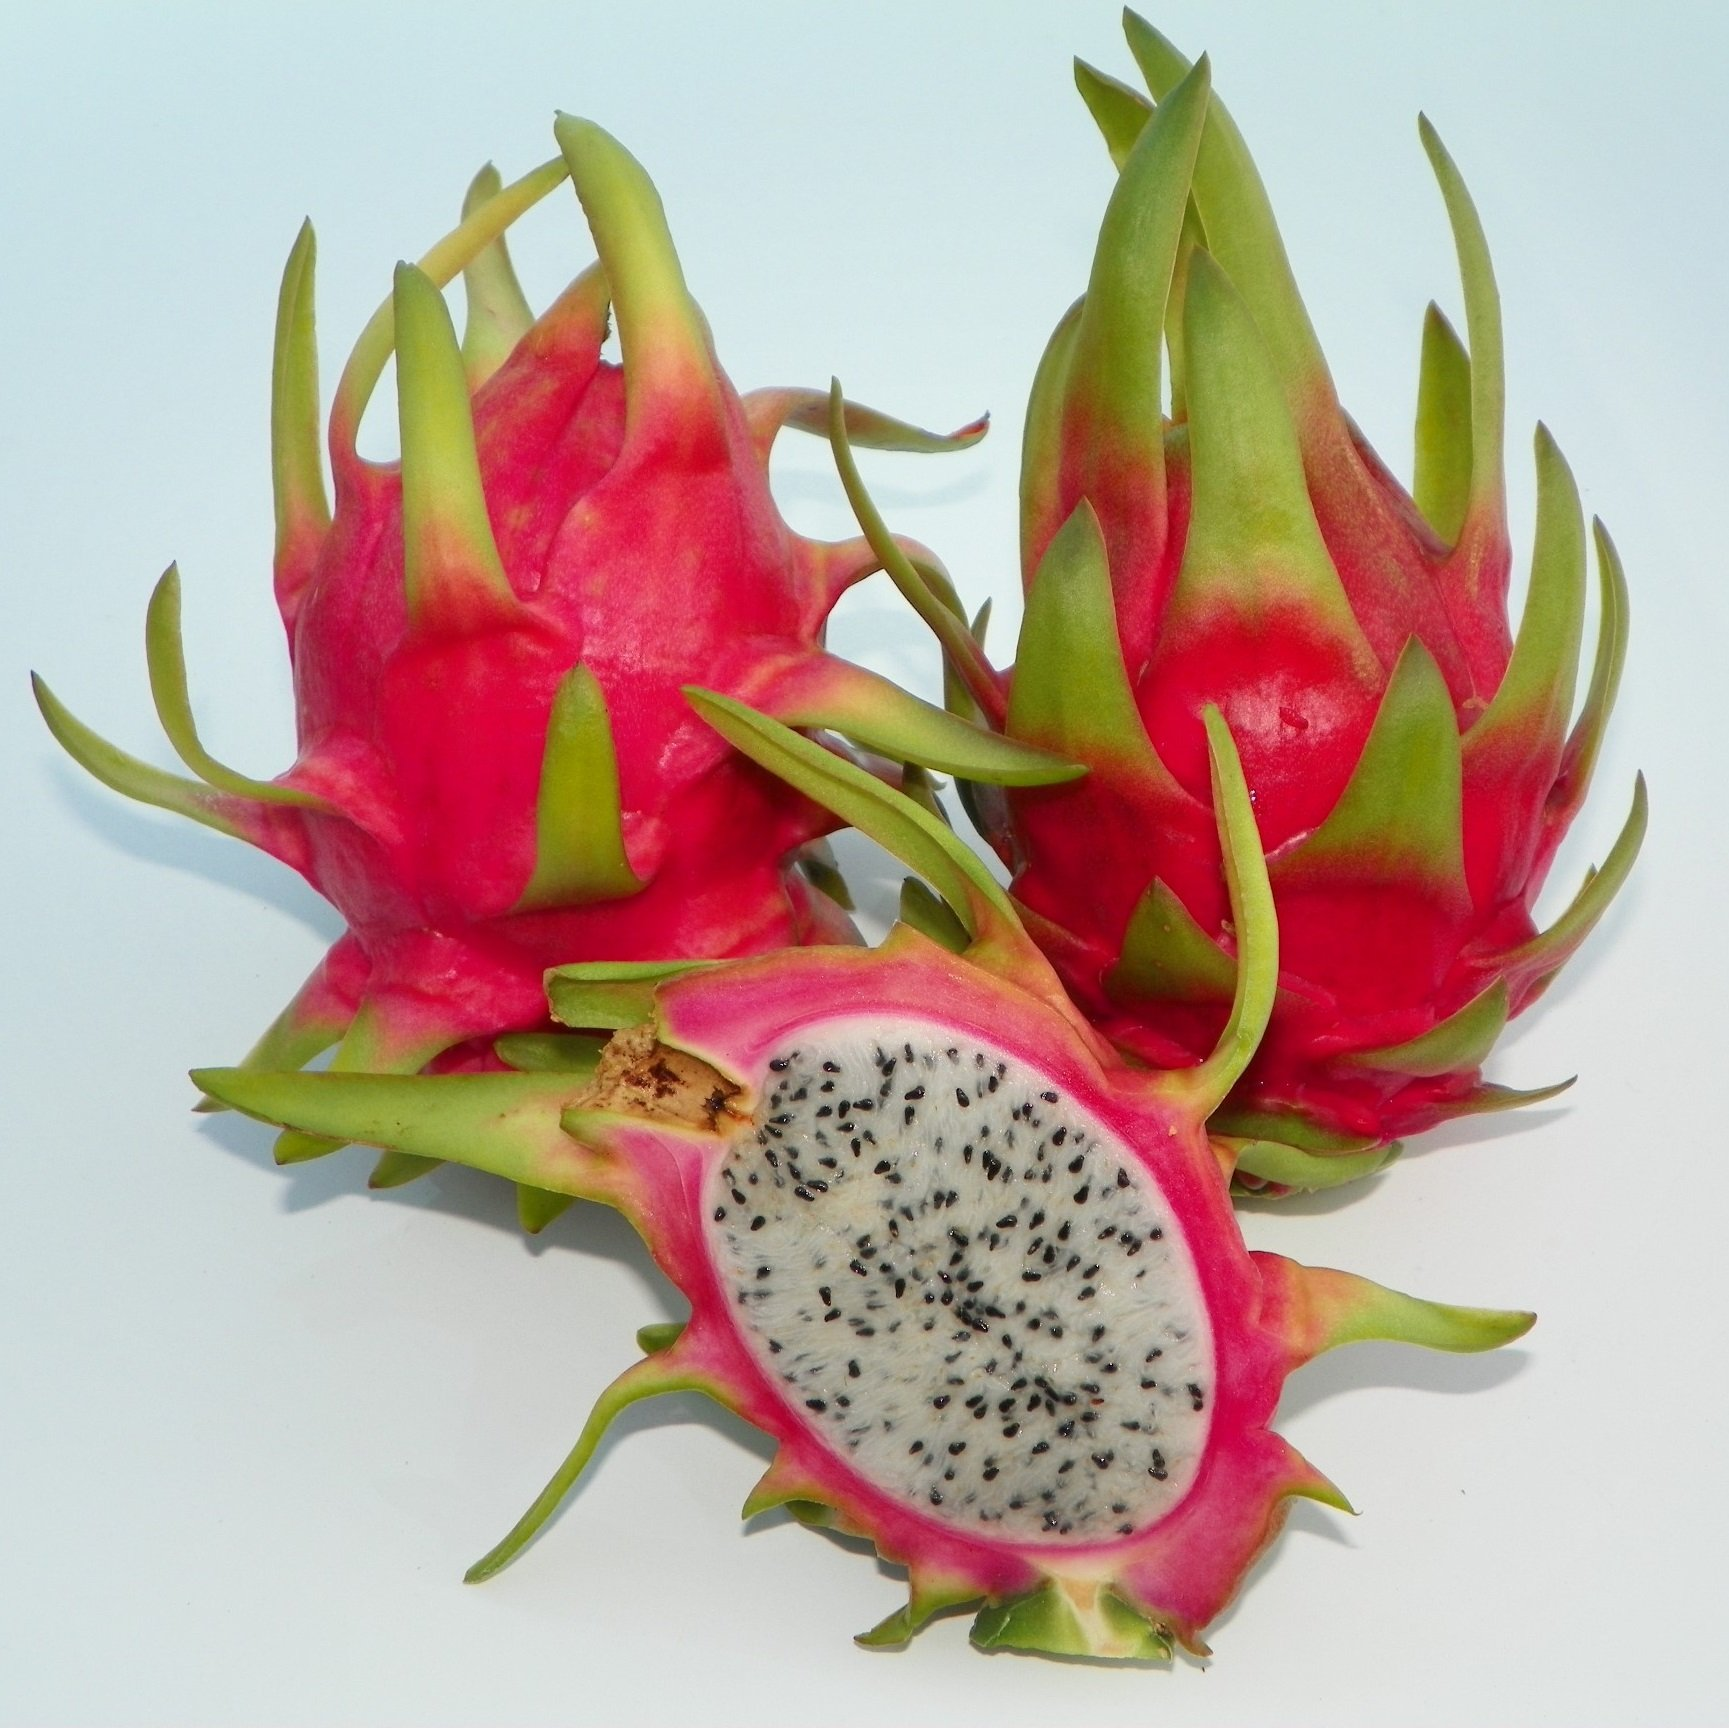 Dragon Fruit variety Thomson fruit sliced